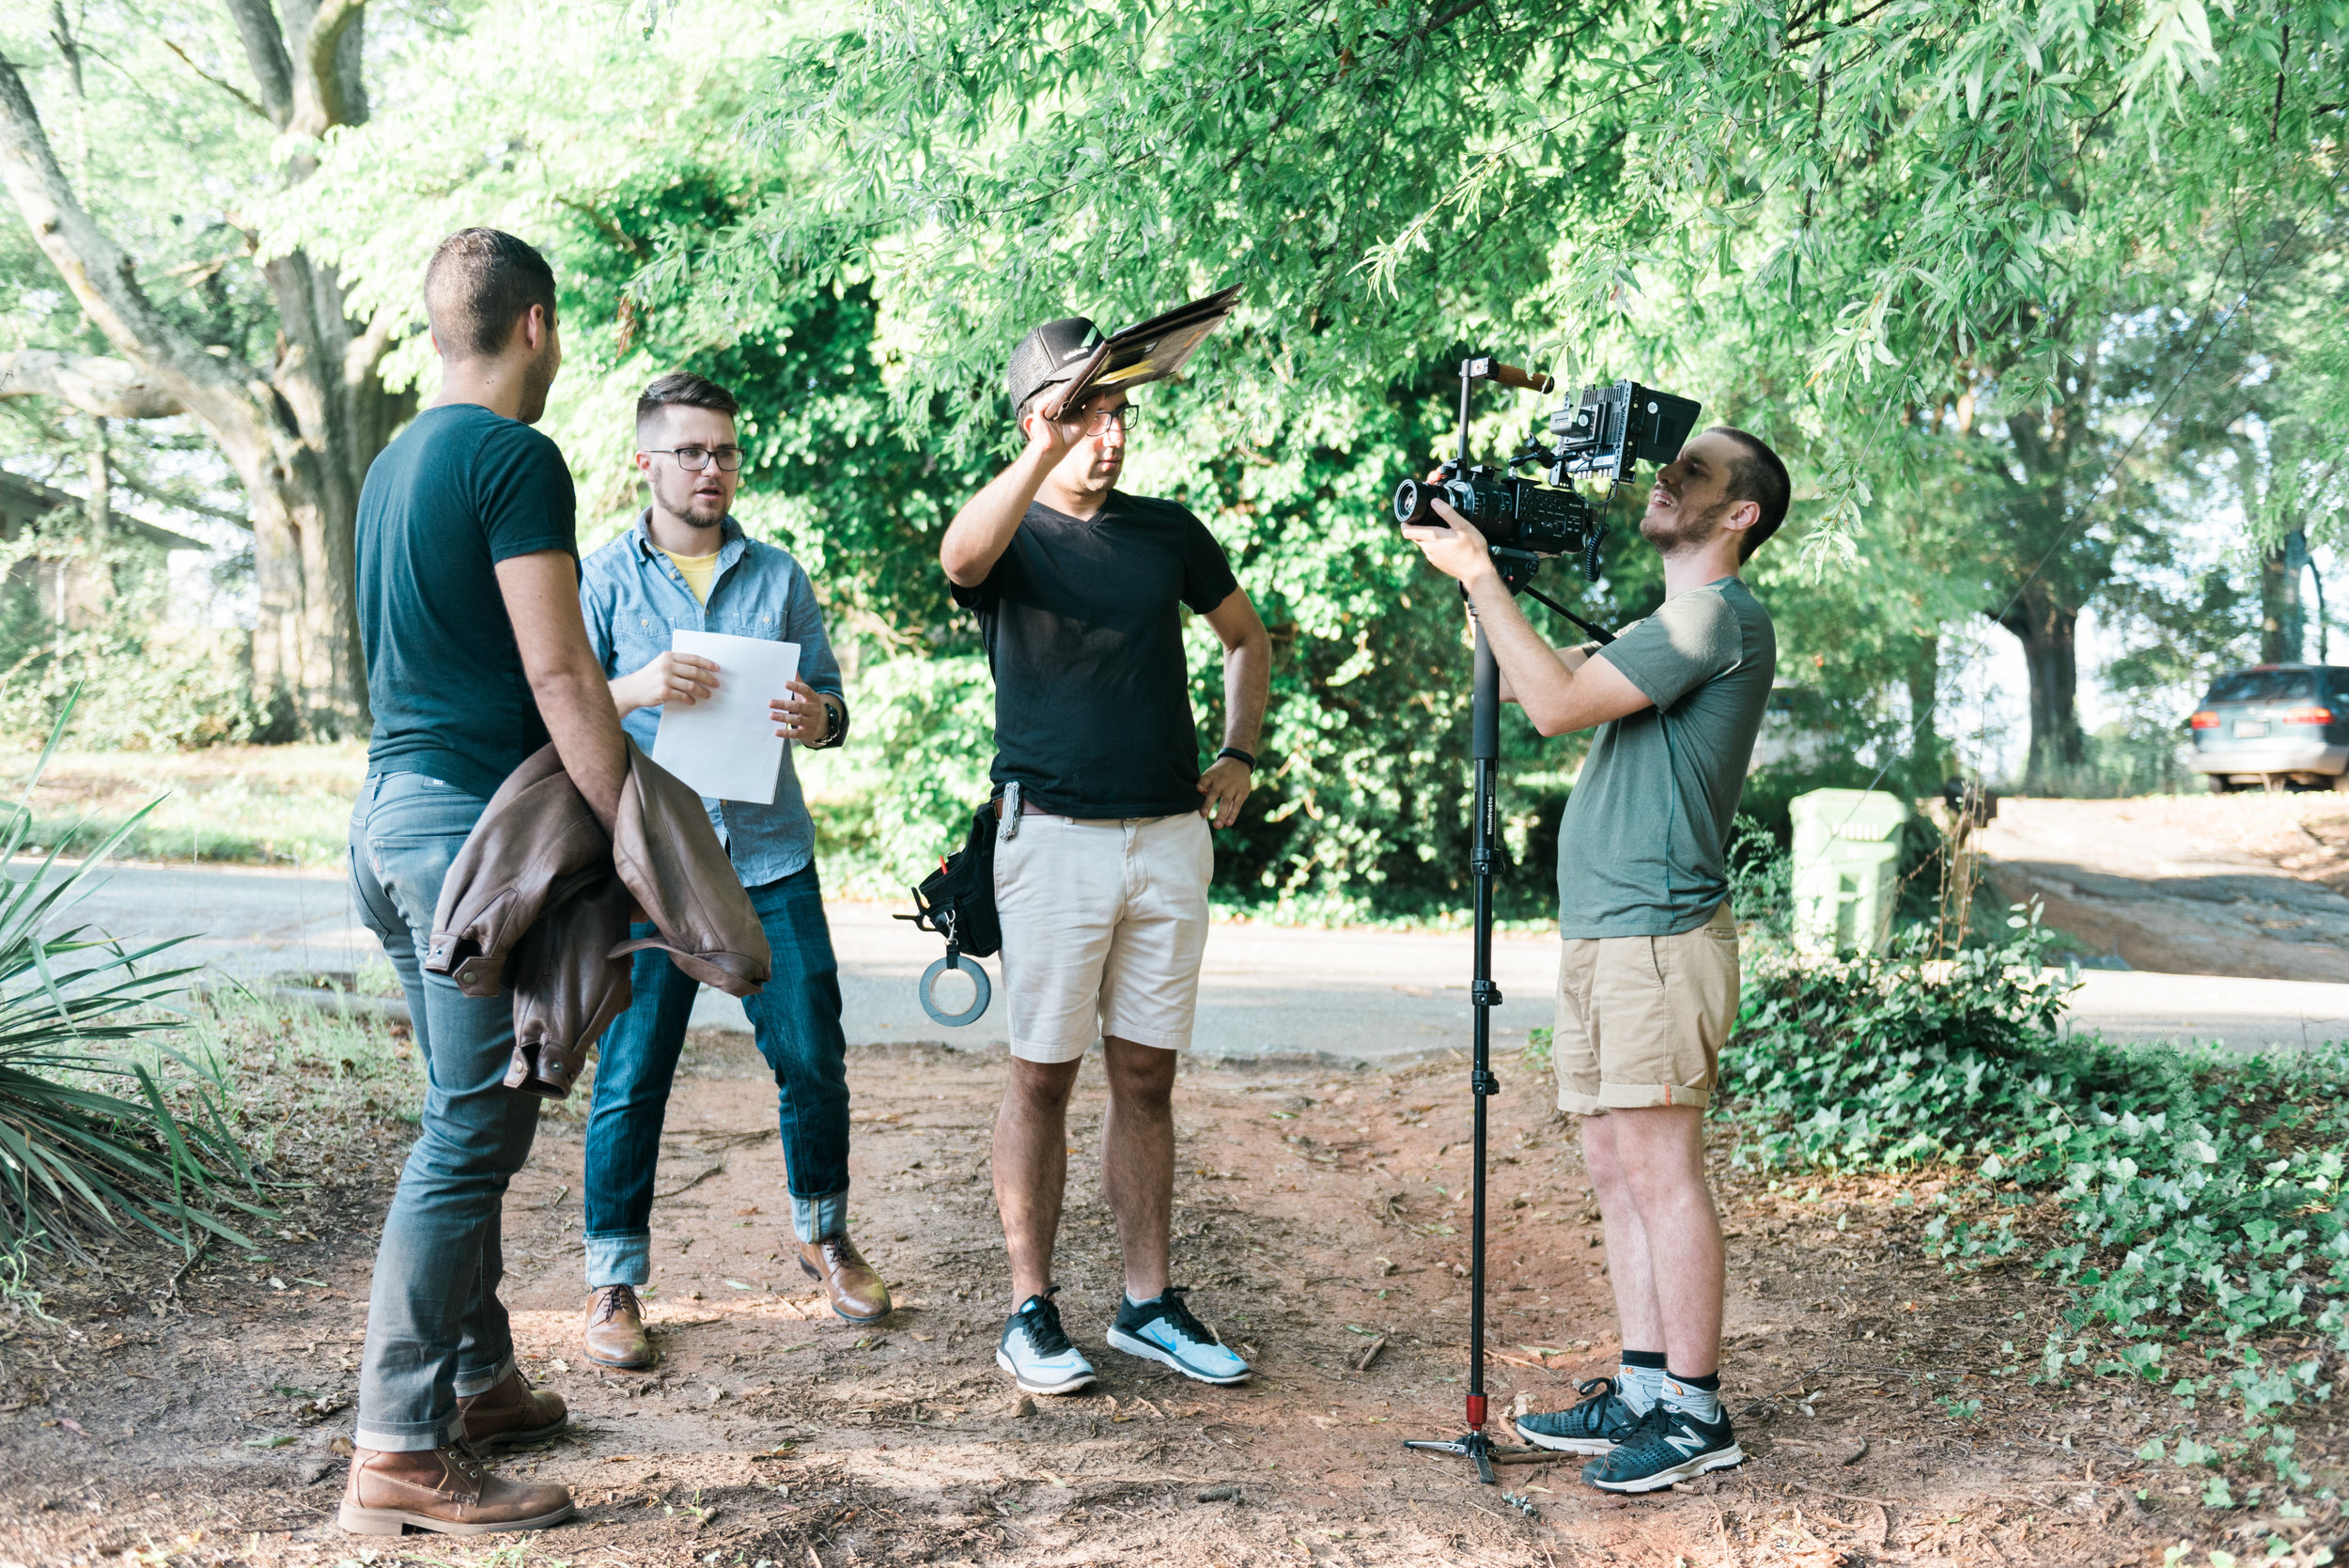 atlanta unit stills photographer marc sugrue music video